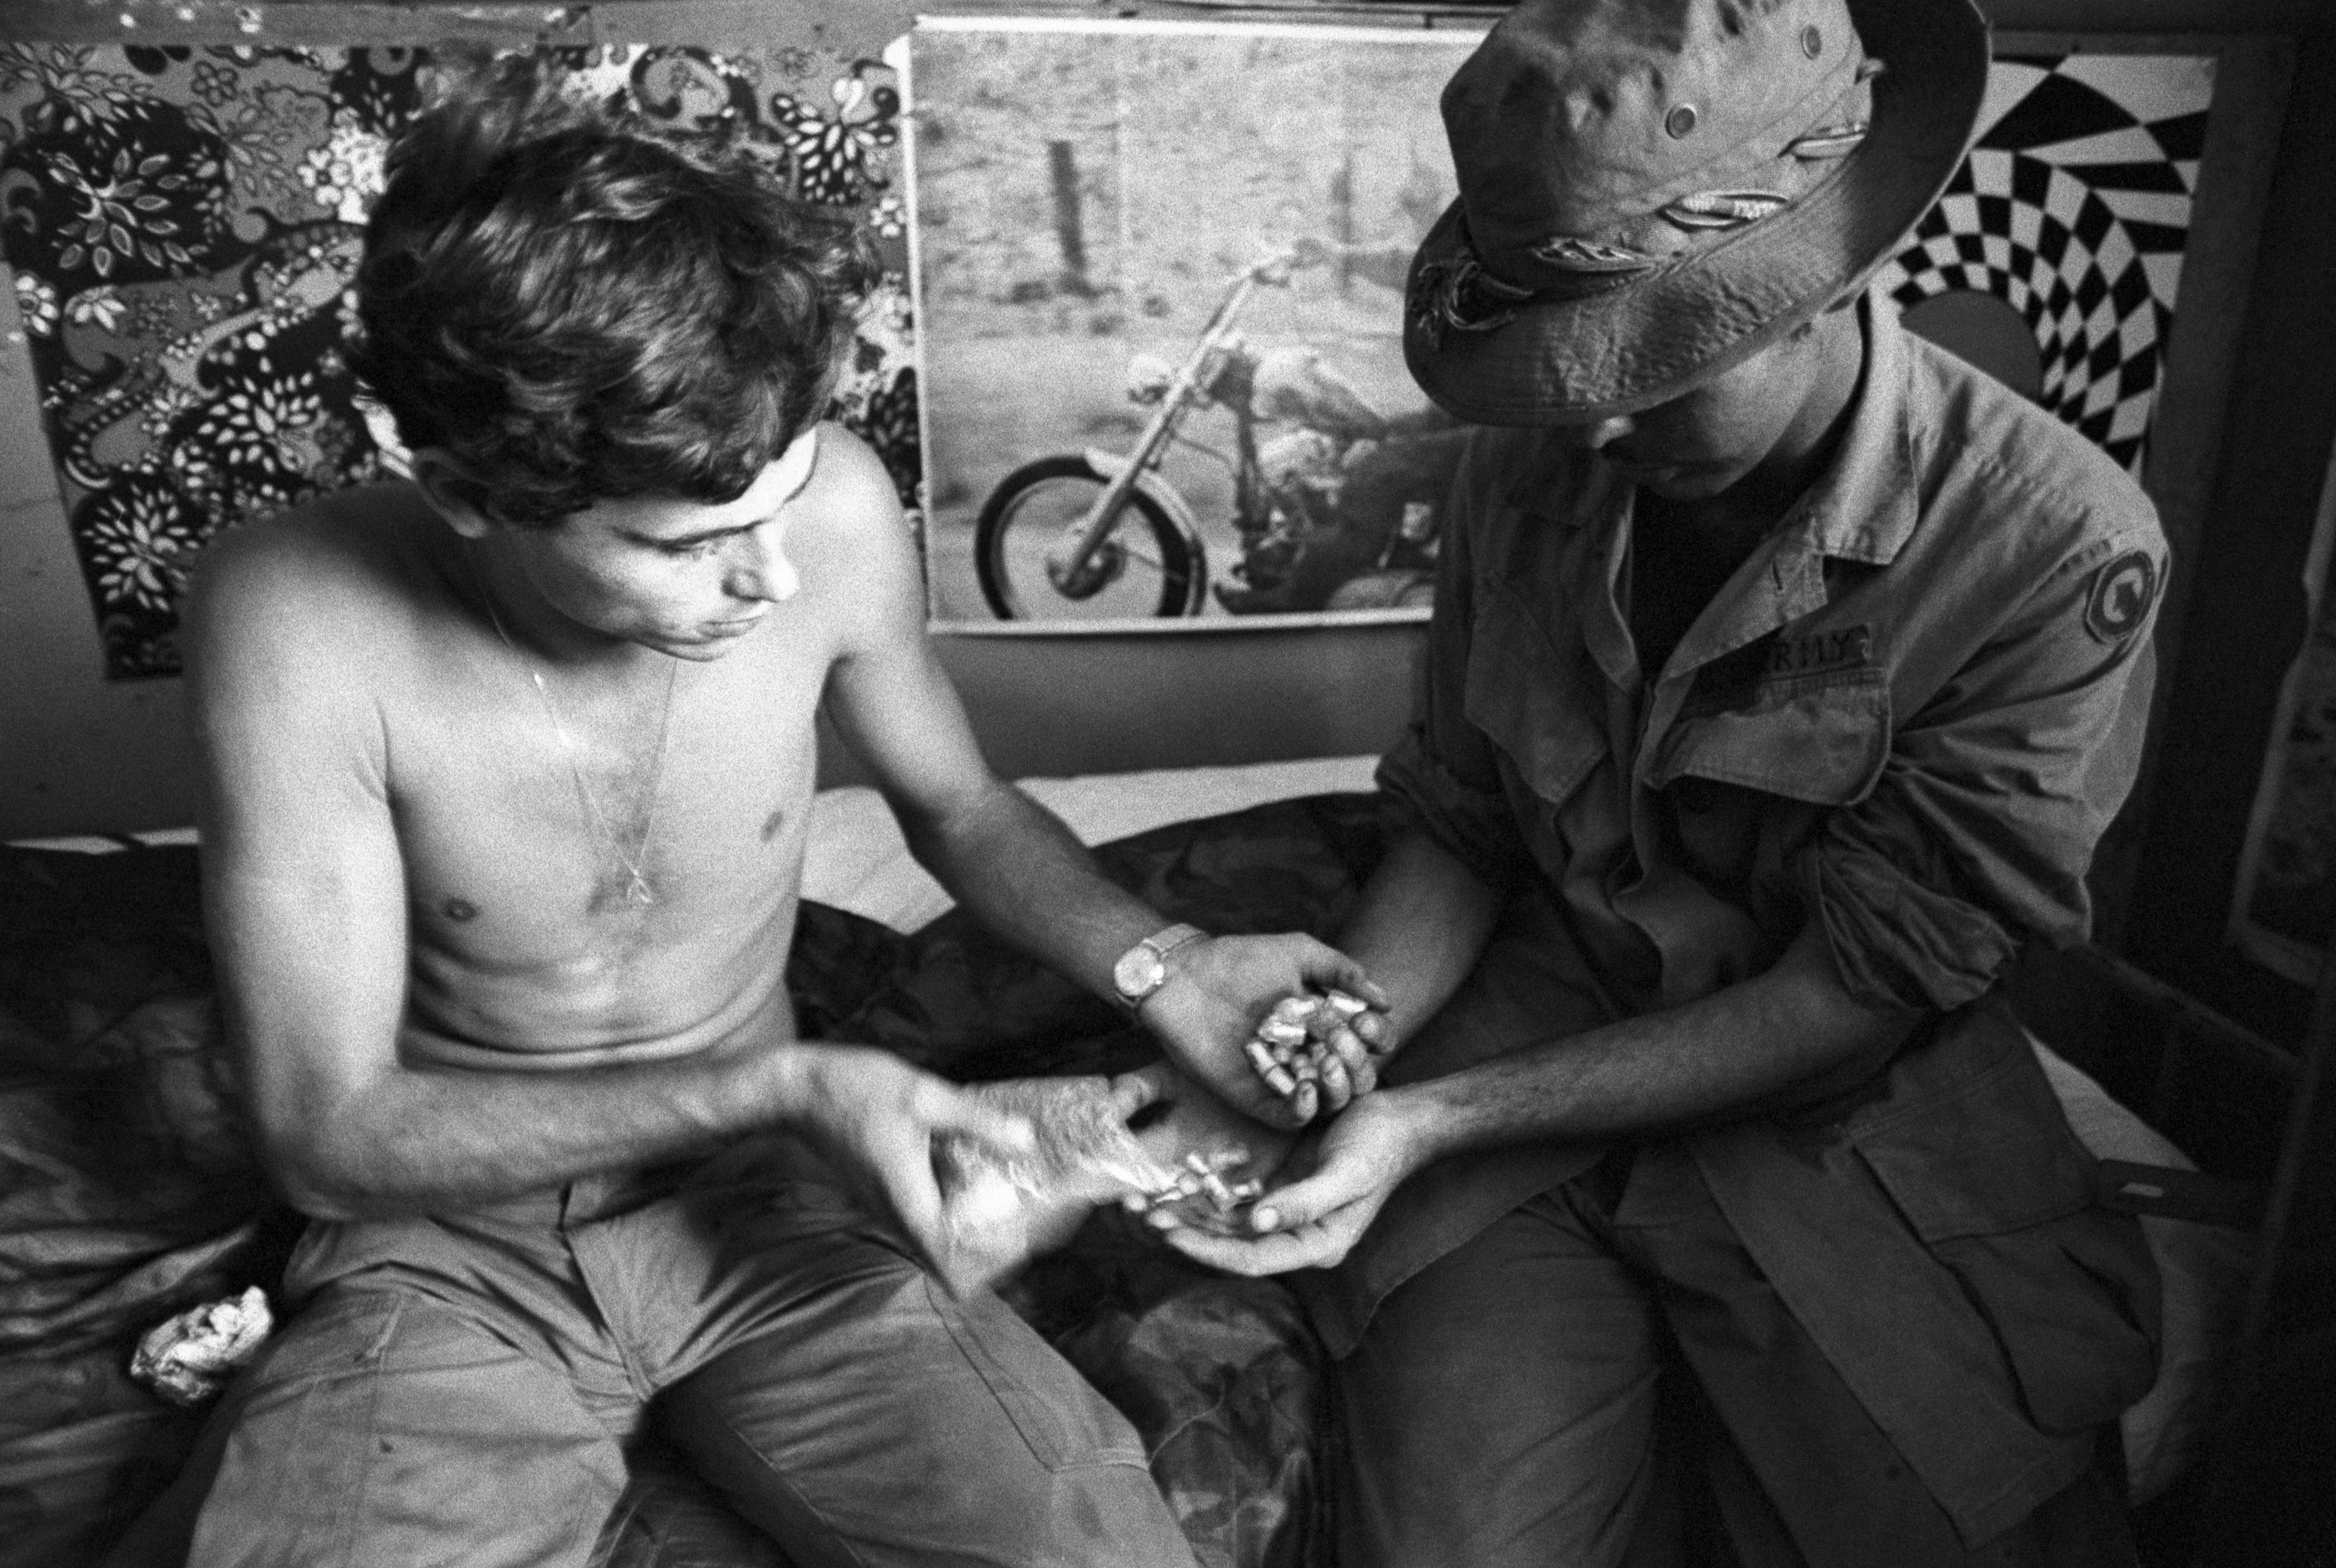 G.I.s' Drug Use in Vietnam Soared—With Their Commanders' Help